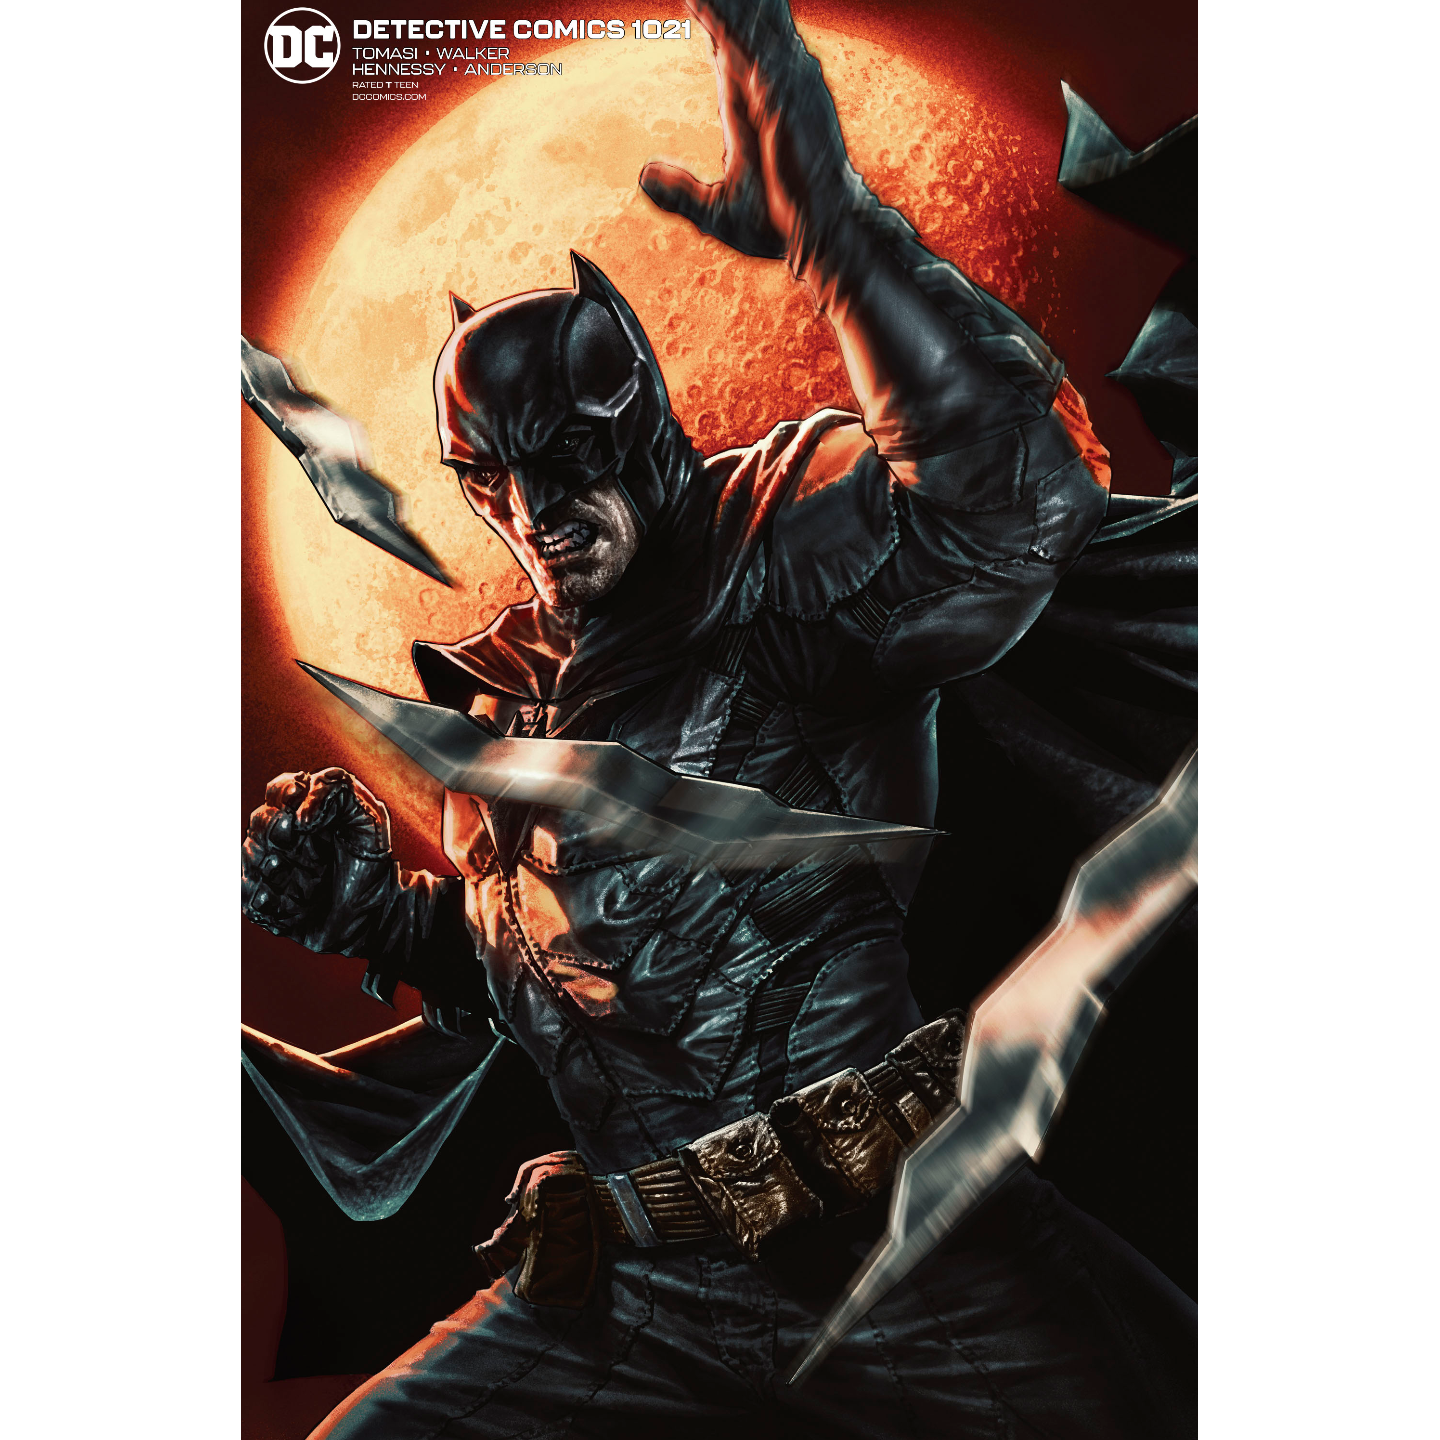 DETECTIVE COMICS #1021 CARD STOCK LEE BERMEJO VAR ED